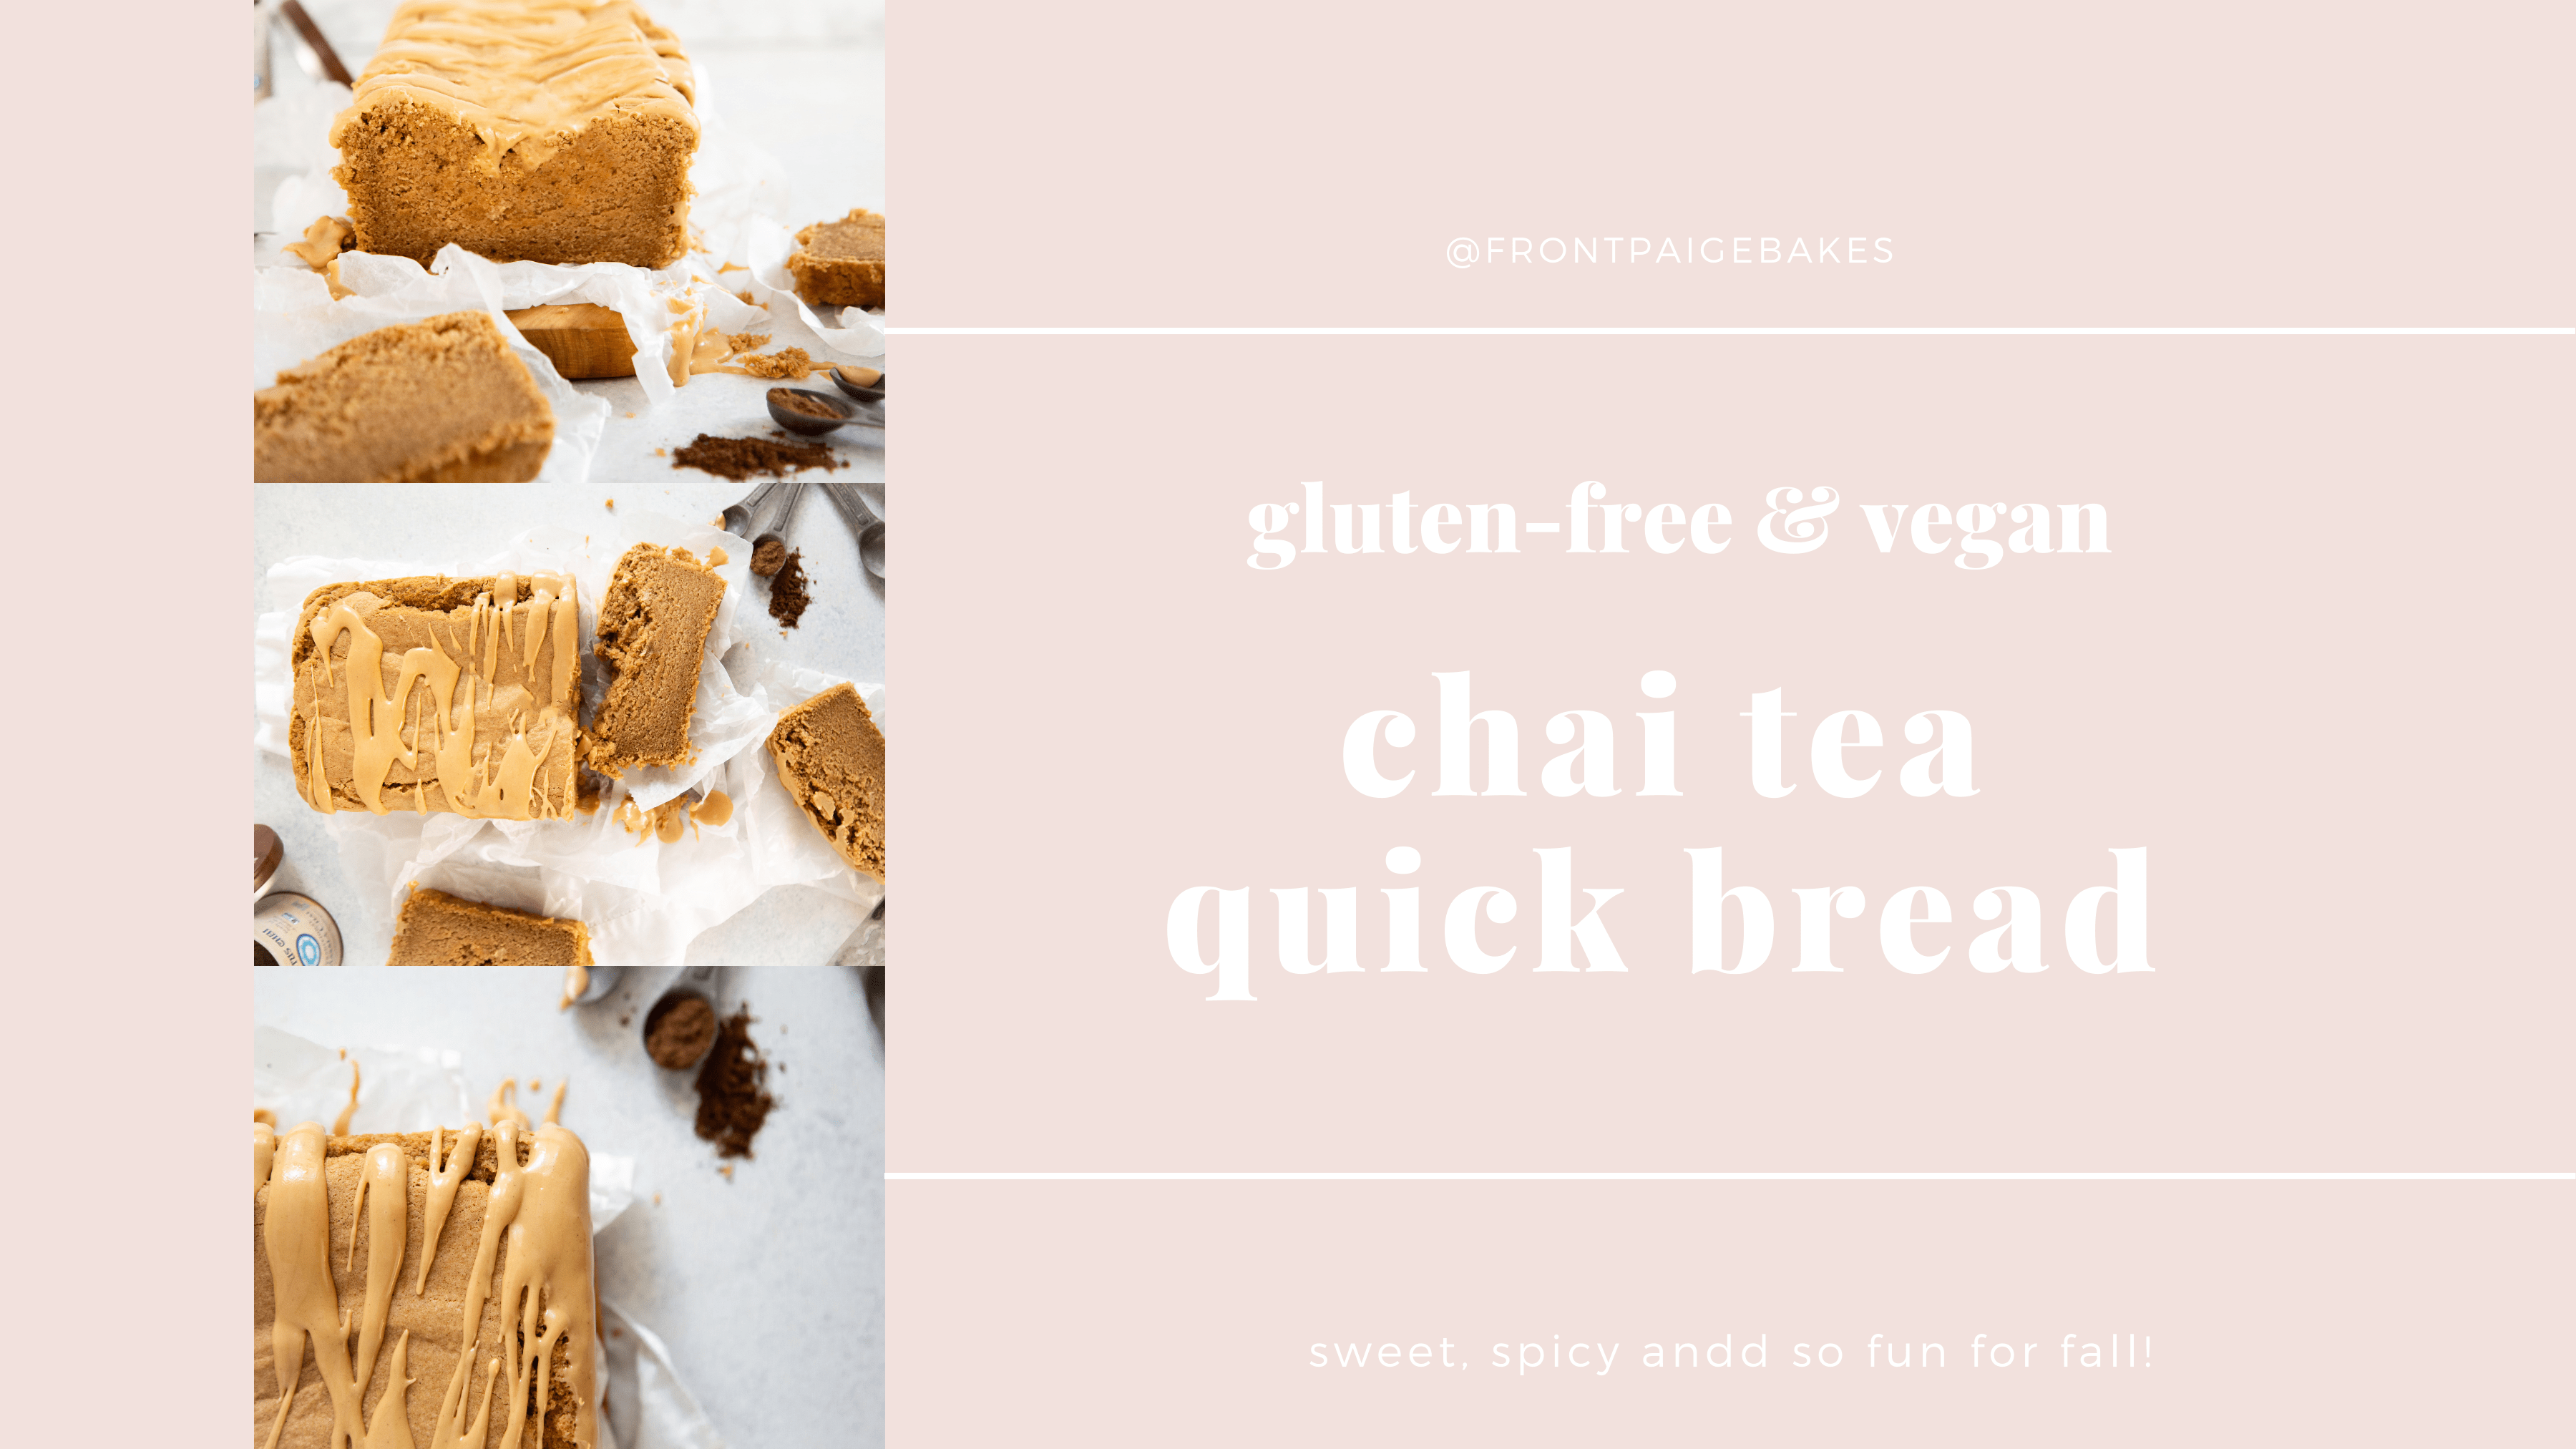 Glutetn-free and Vegan Chai Quick Bread is the perfect fall snack! Full of warm chai spices and rich flavor, this is a perfect treat for fall.